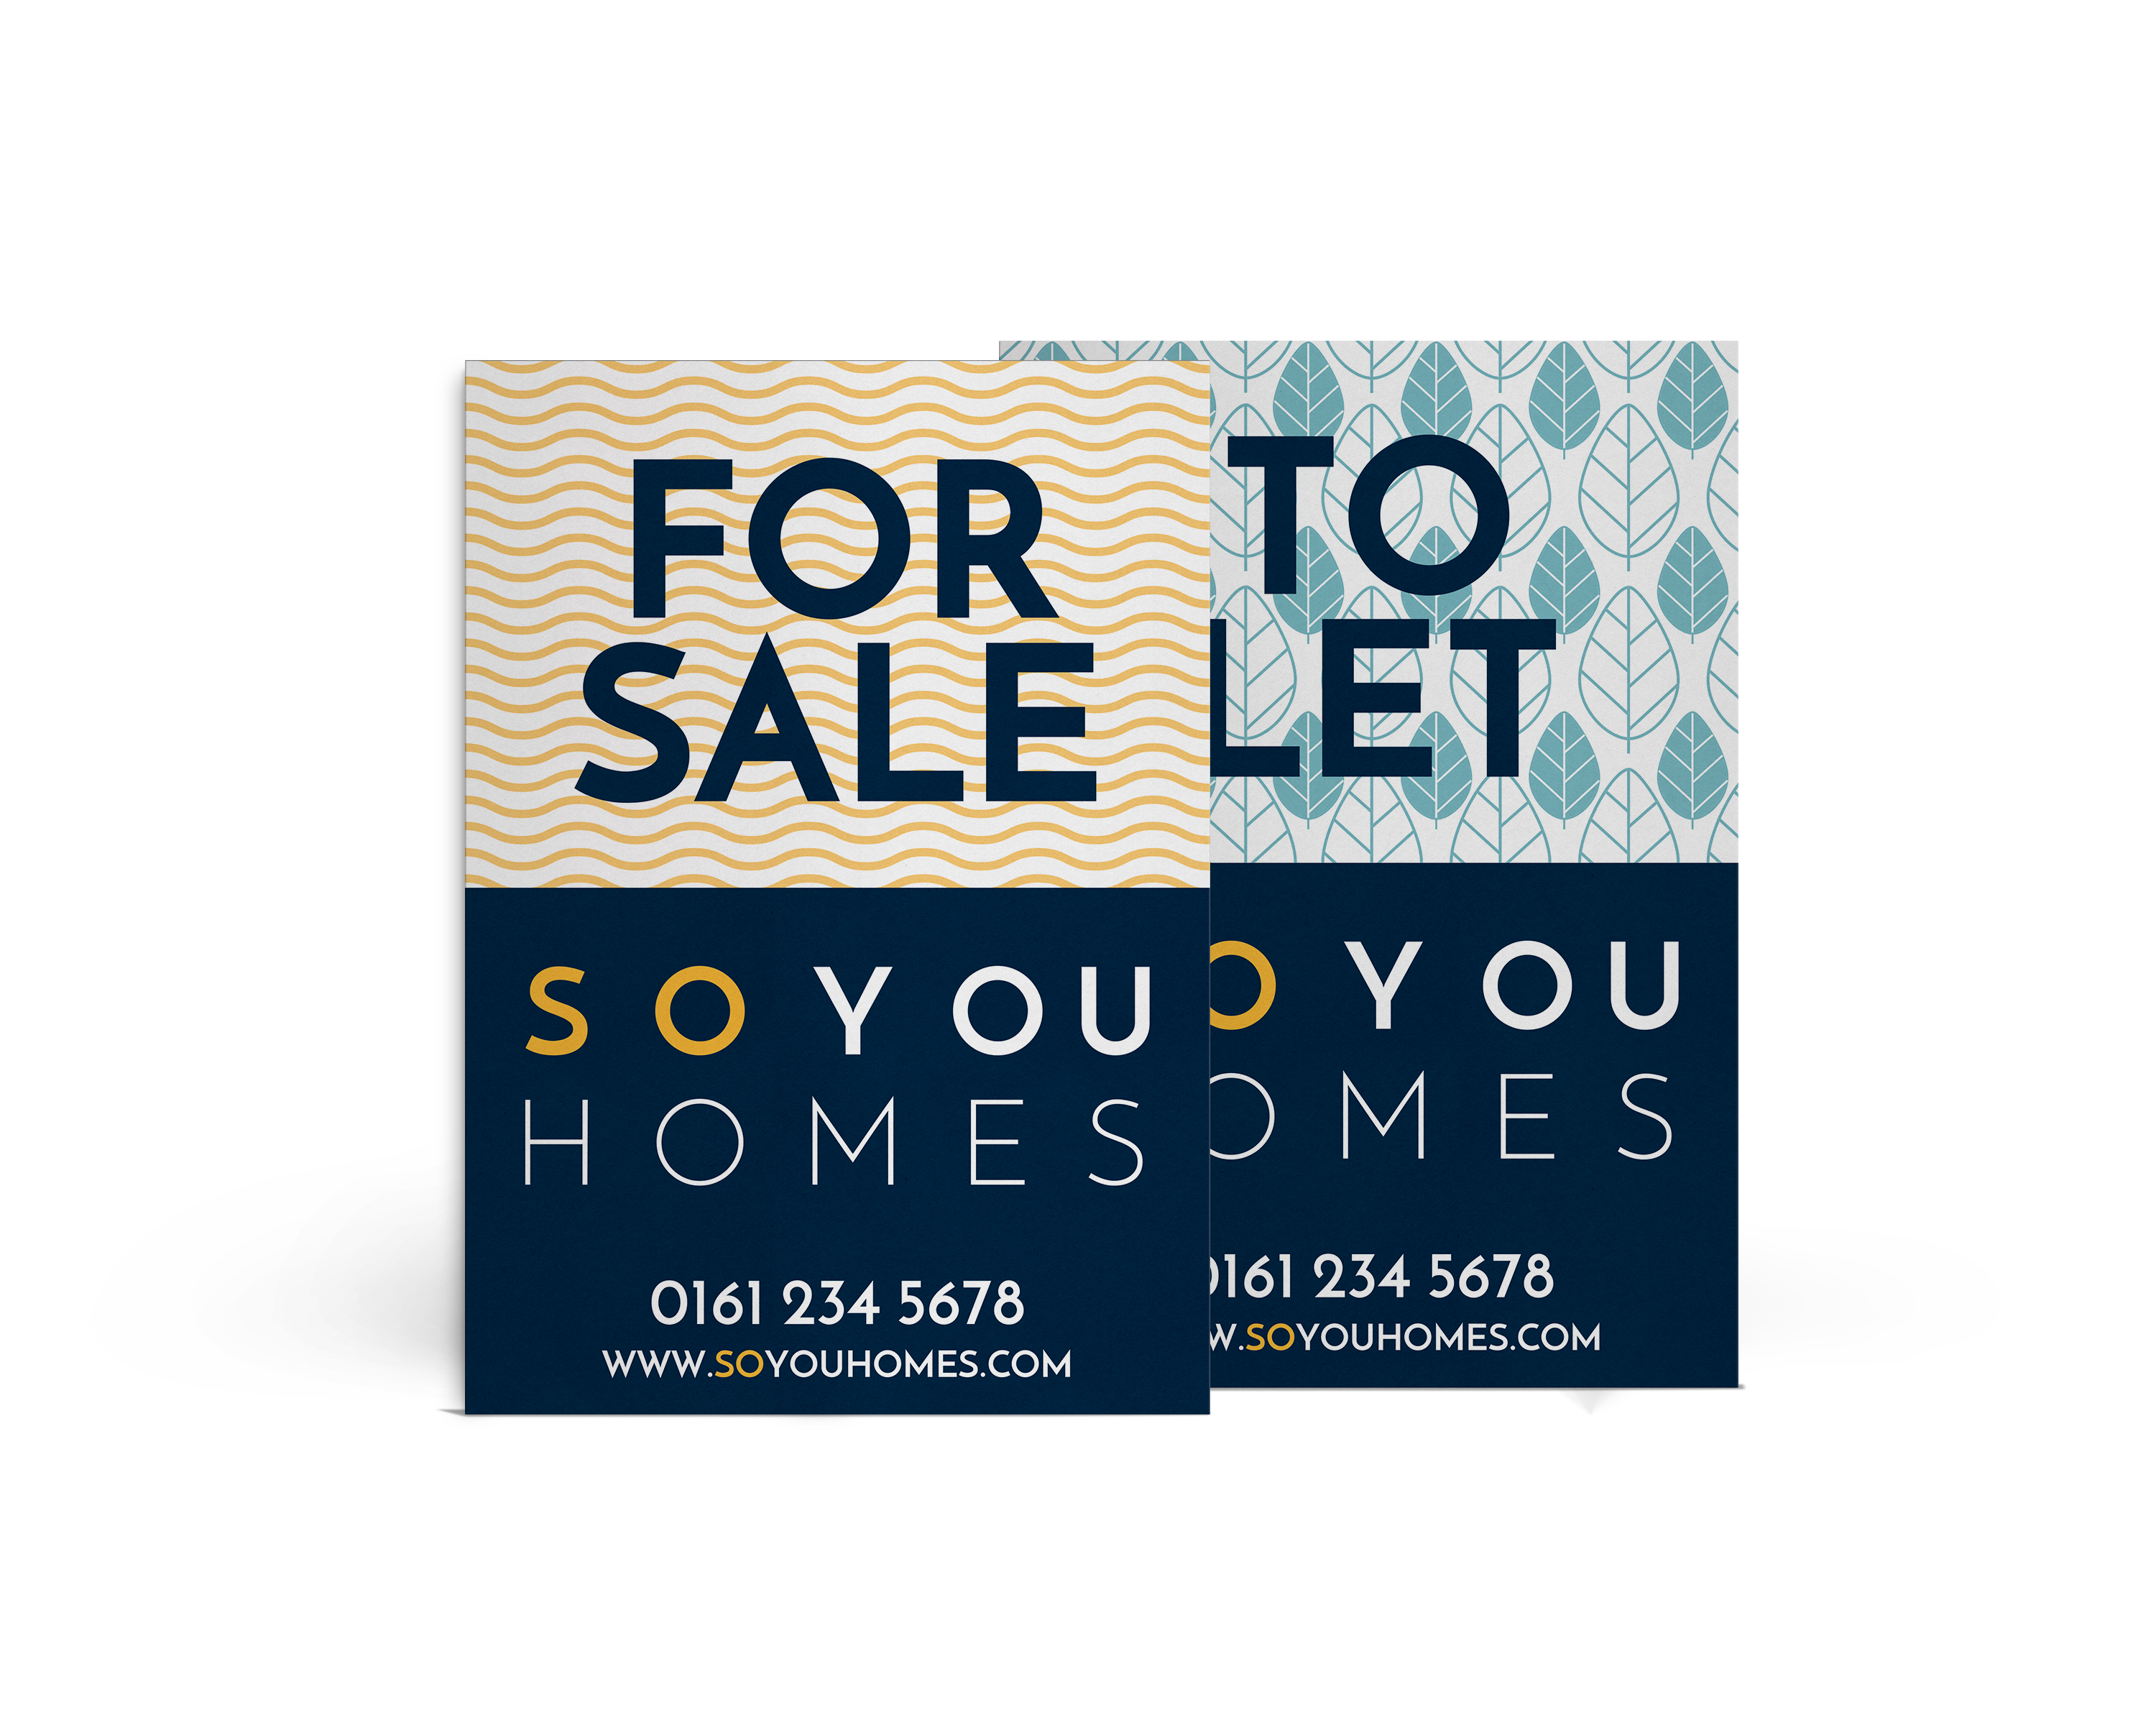 So You Homes To Let and For Sale Signs with patterned backgrounds